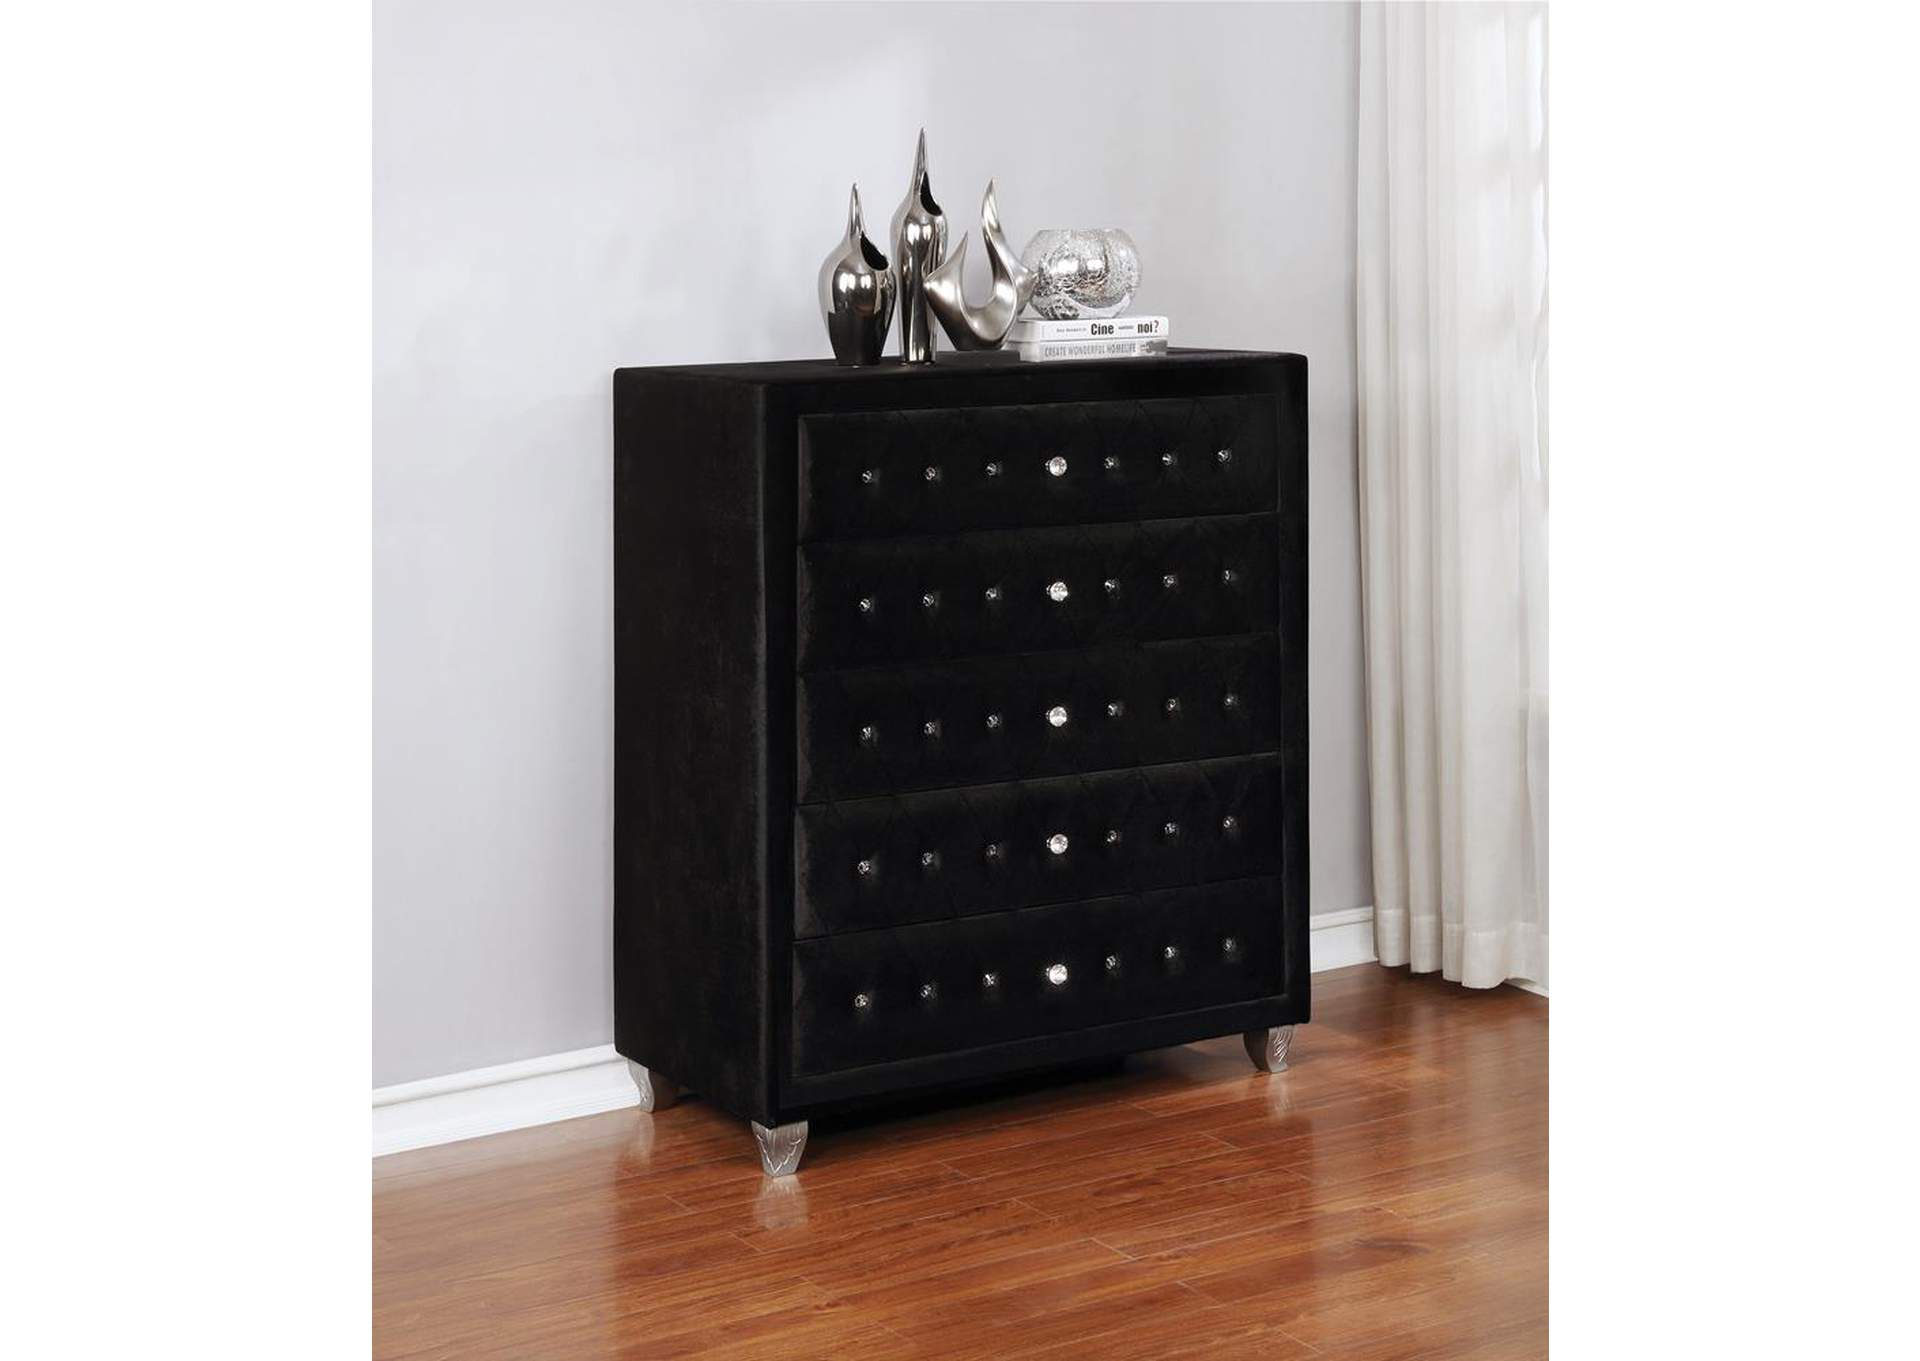 Metallic Deanna Contemporary Black and Metallic Chest,Coaster Furniture